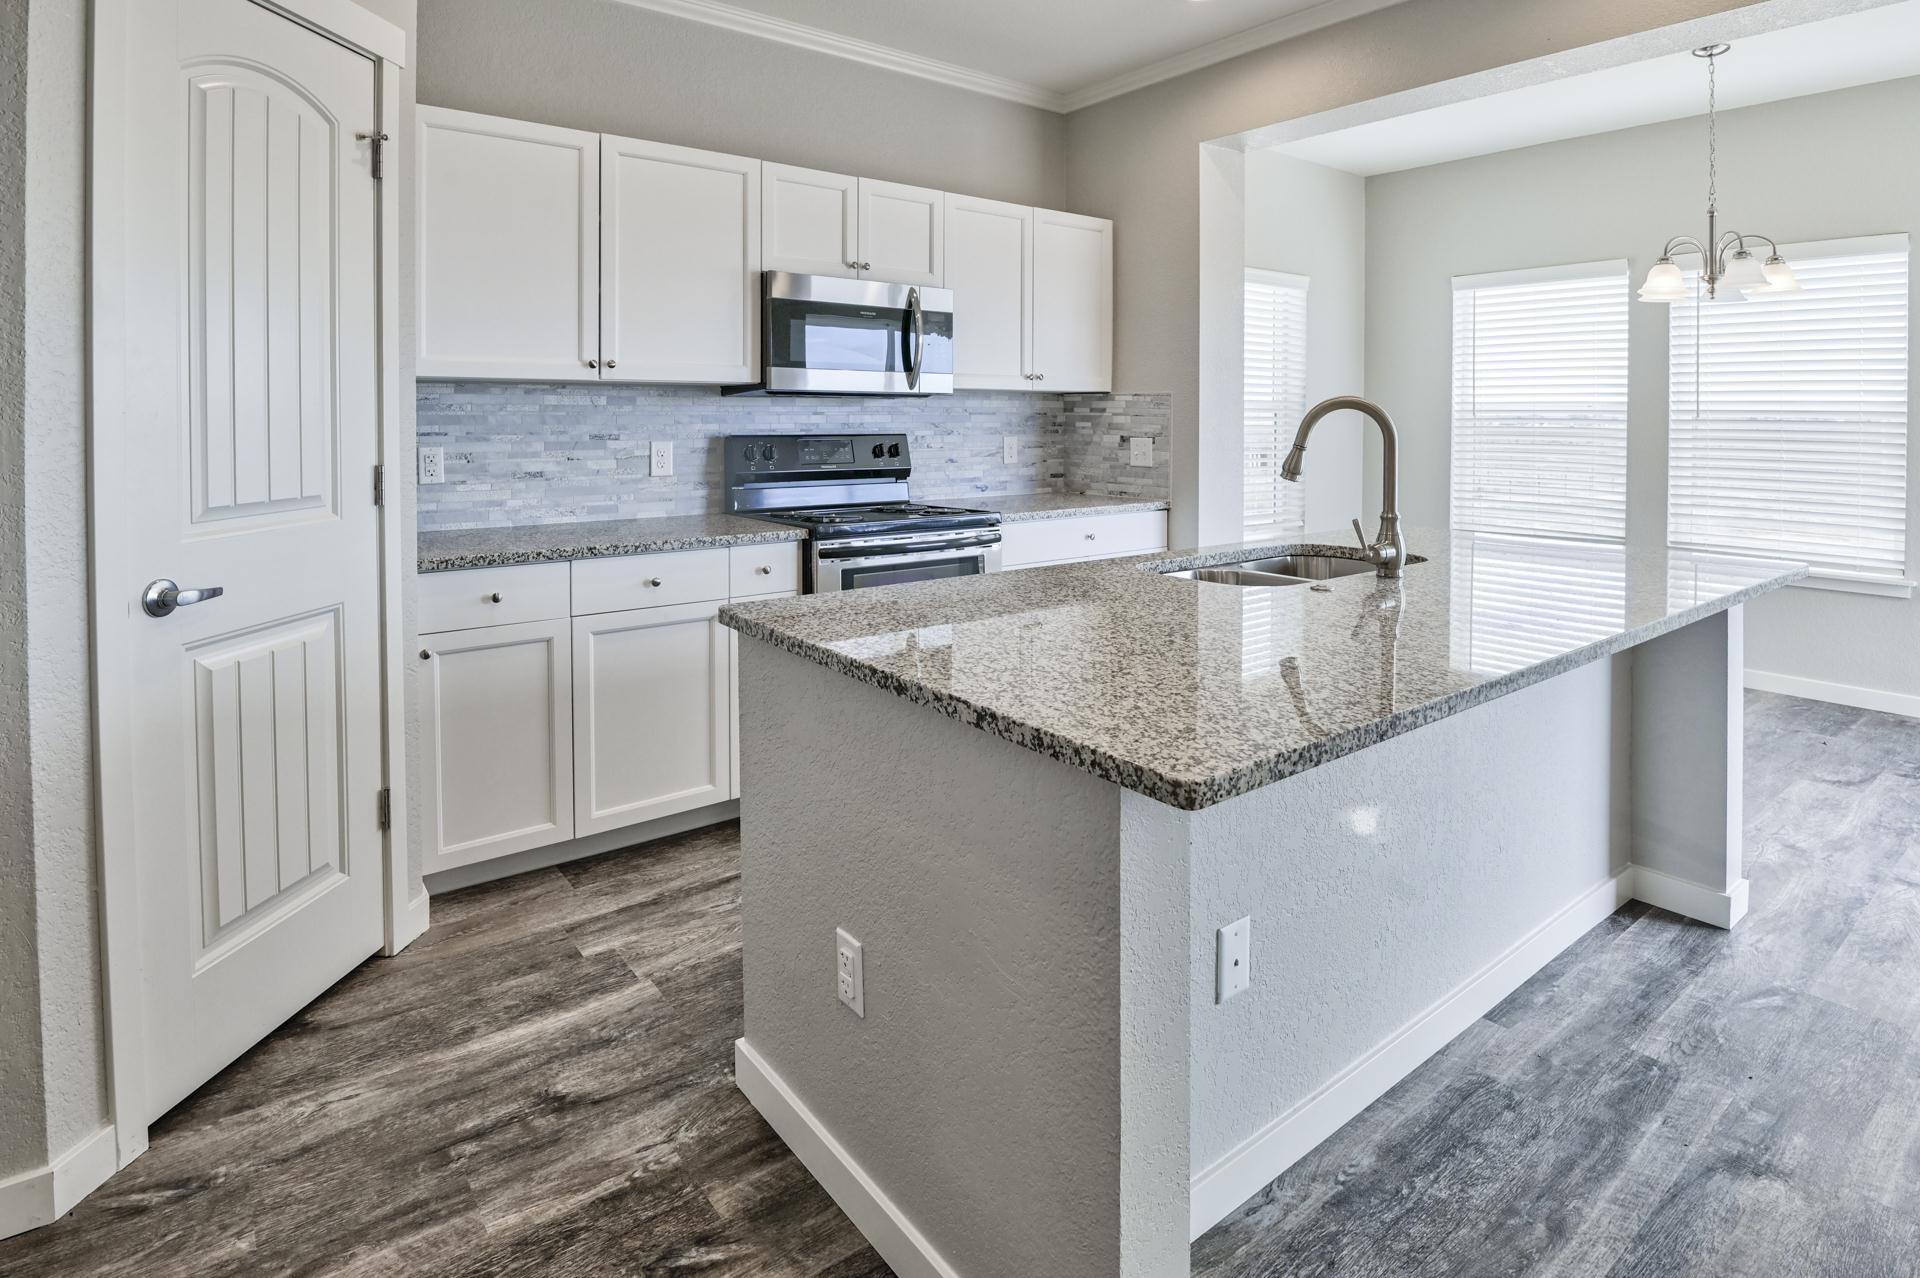 Kitchen featured in the Whisper By Westover Homes in Pueblo, CO